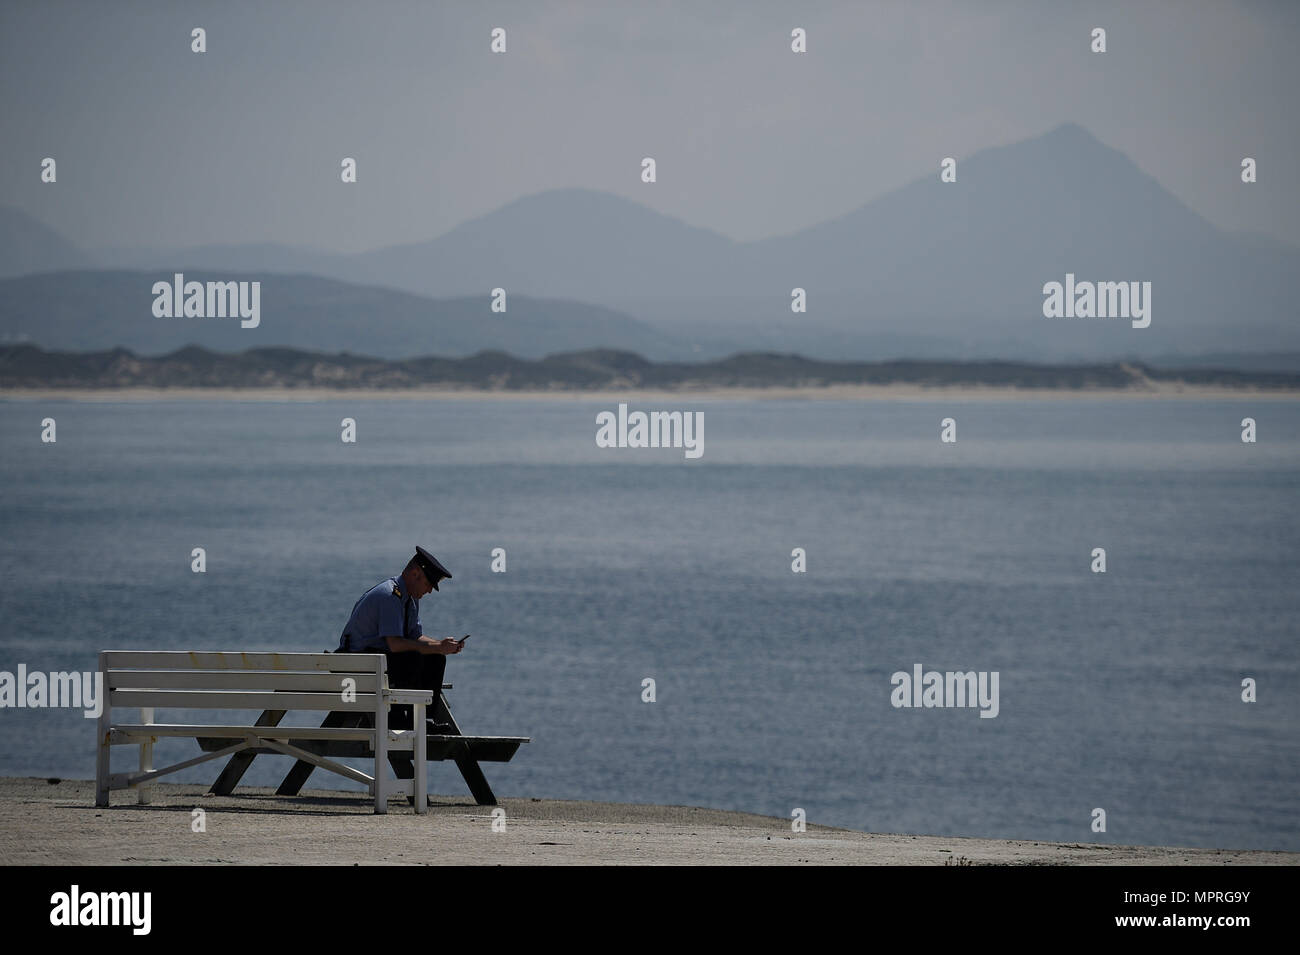 Garda Alan Gallagher uses his mobile phone as he waits on the shore for voters to show up after carrying the polling box for the referendum on liberalising abortion law a day early for the few people that live off the coast of Donegal on the island of Inishbofin, Ireland. - Stock Image